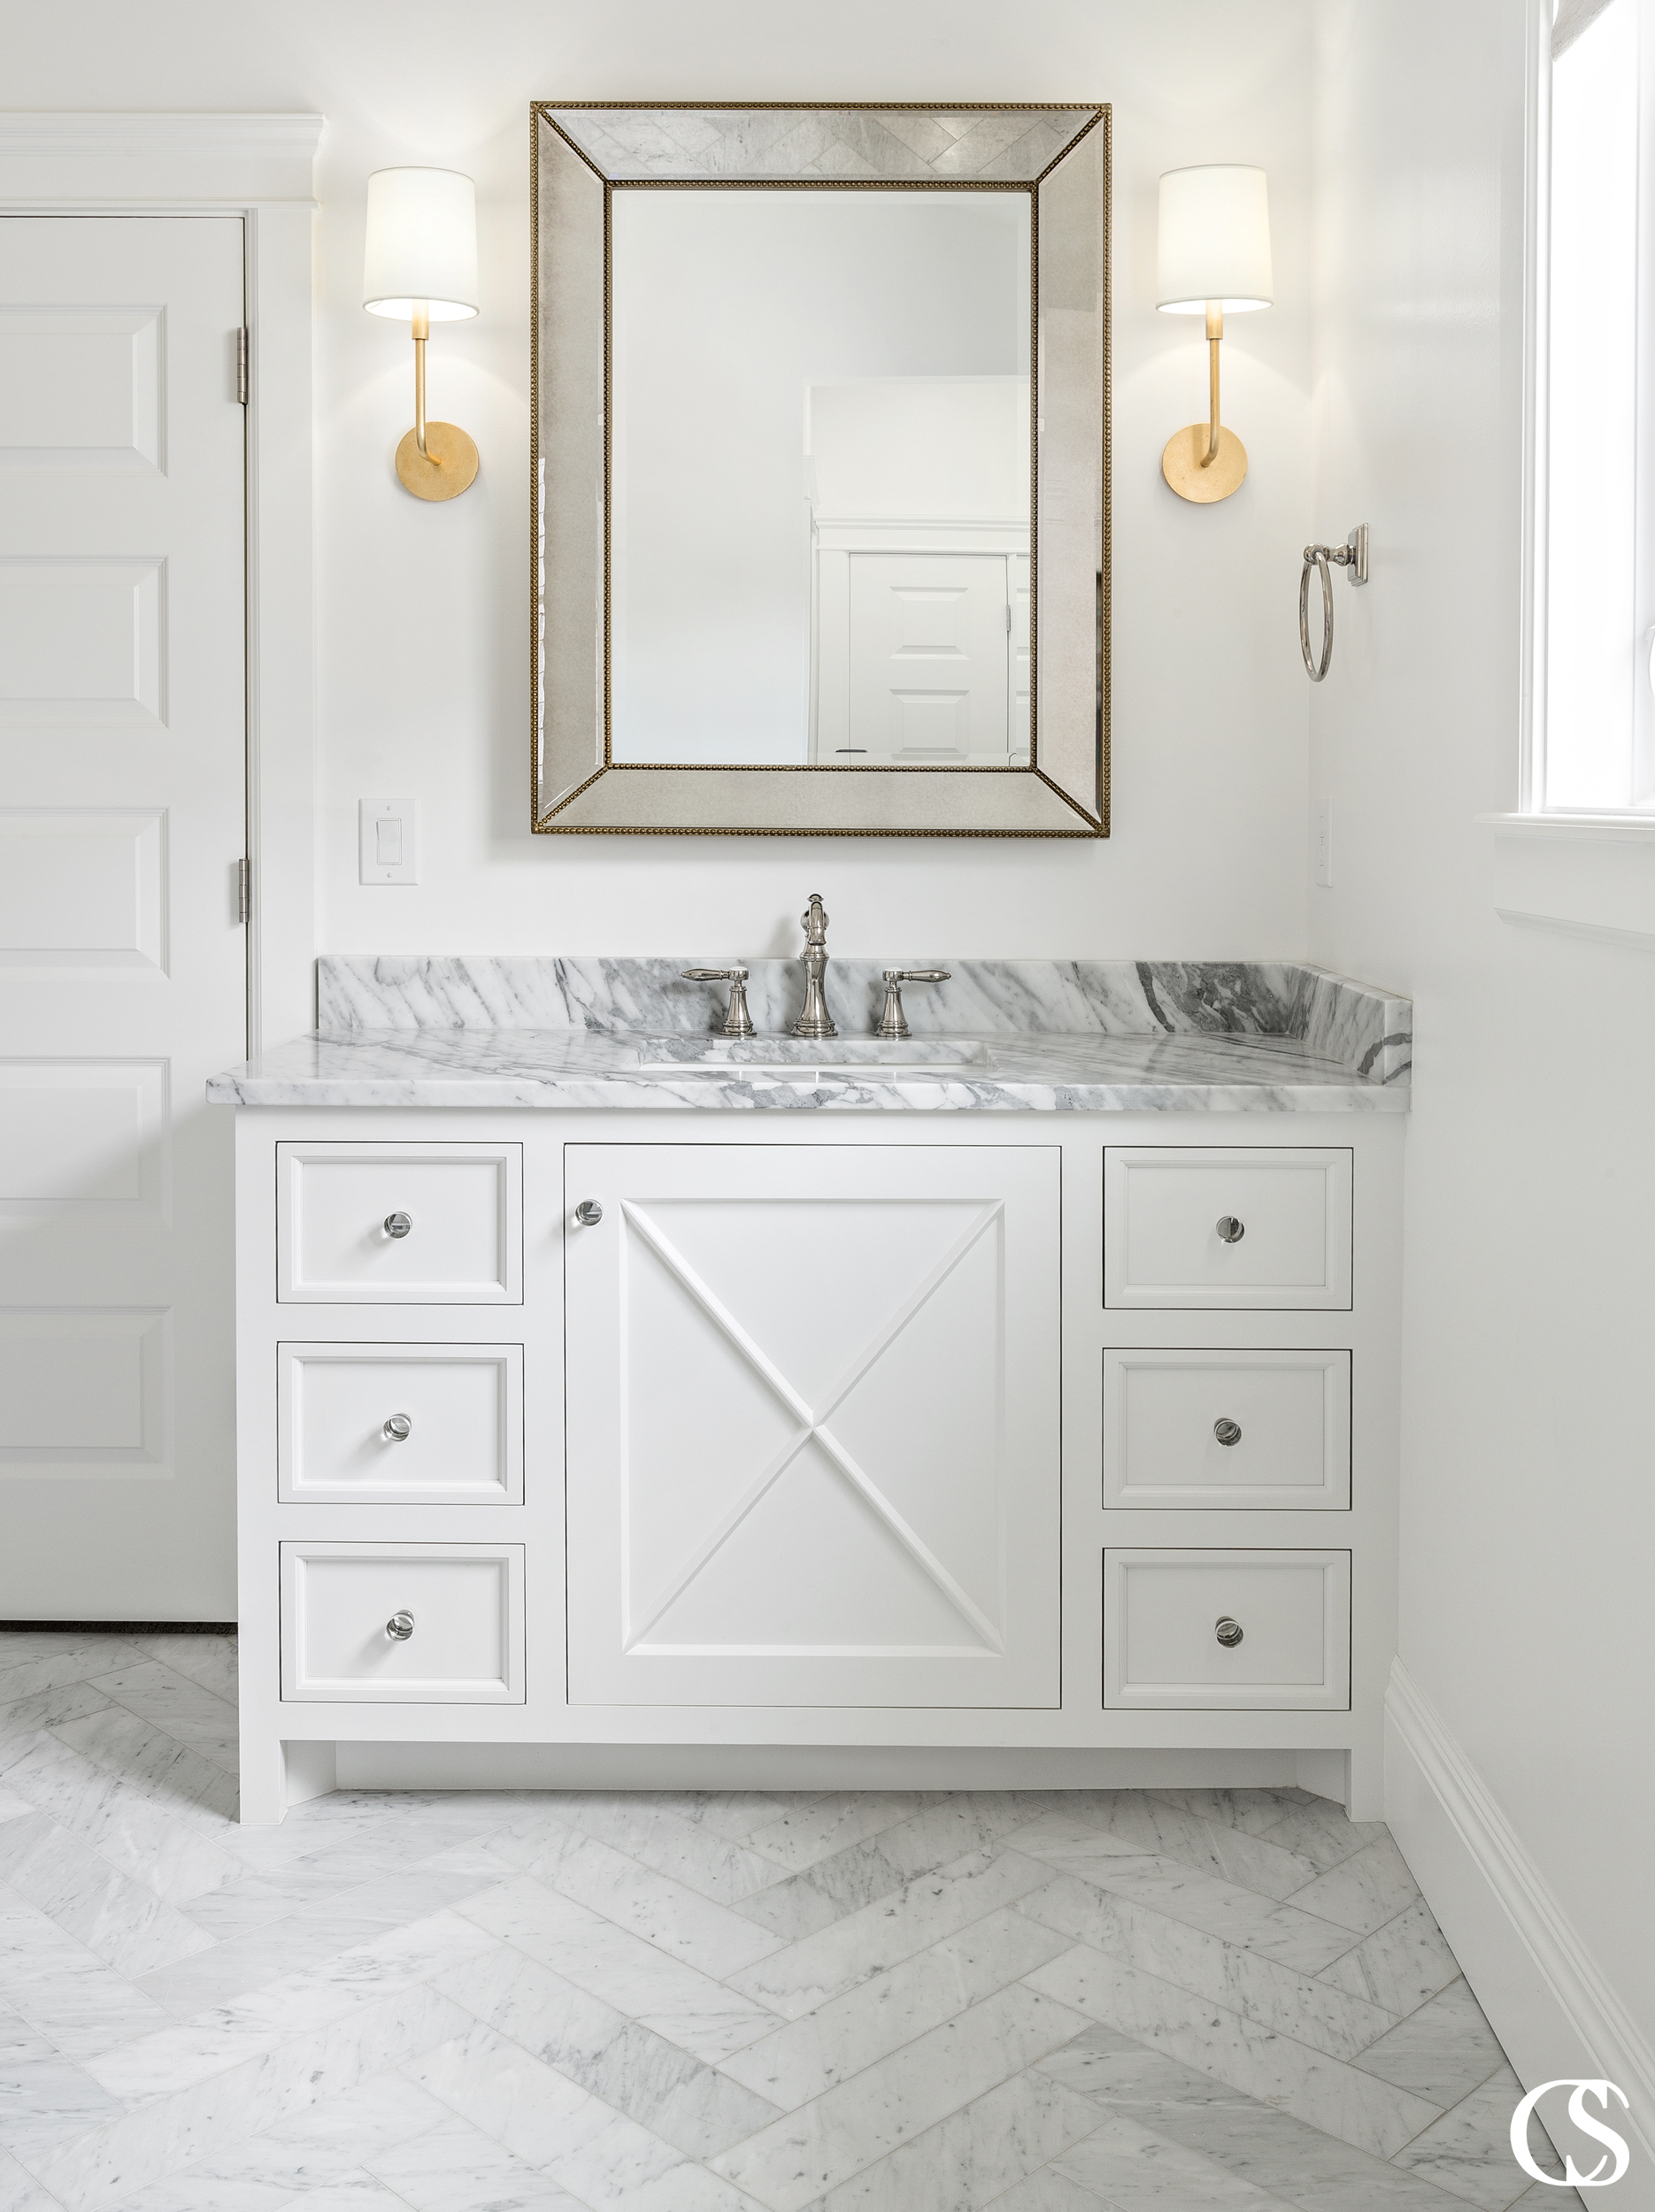 The best custom bathroom cabinet design can combine multiple aesthetics, like the modern and farmhouse looks you see coming together in this white bathroom vanity.